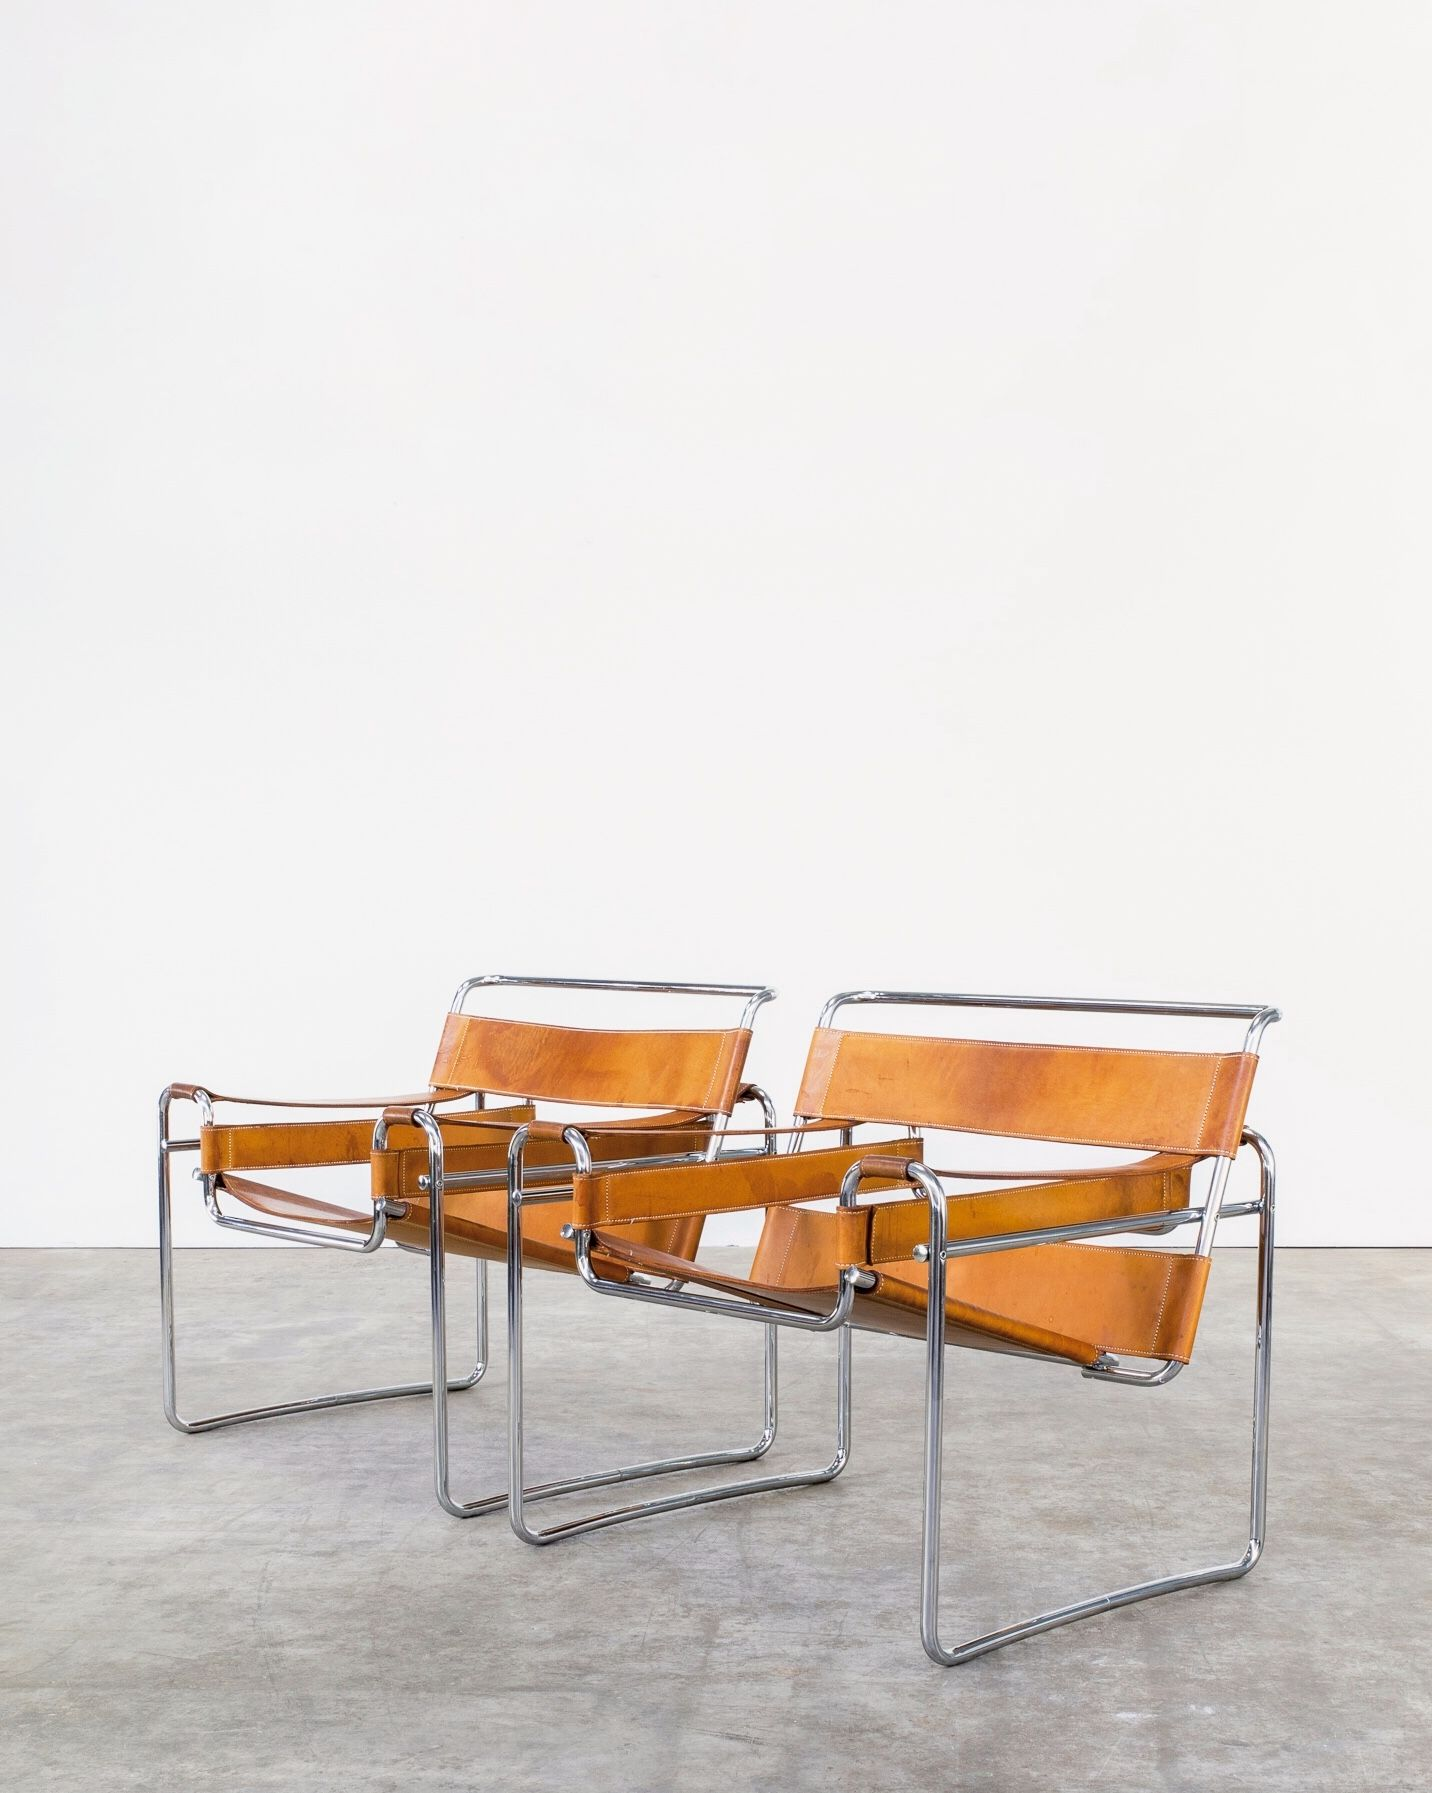 Marcel Breuer 'wassily' B3 chairs 1925 for Gavina